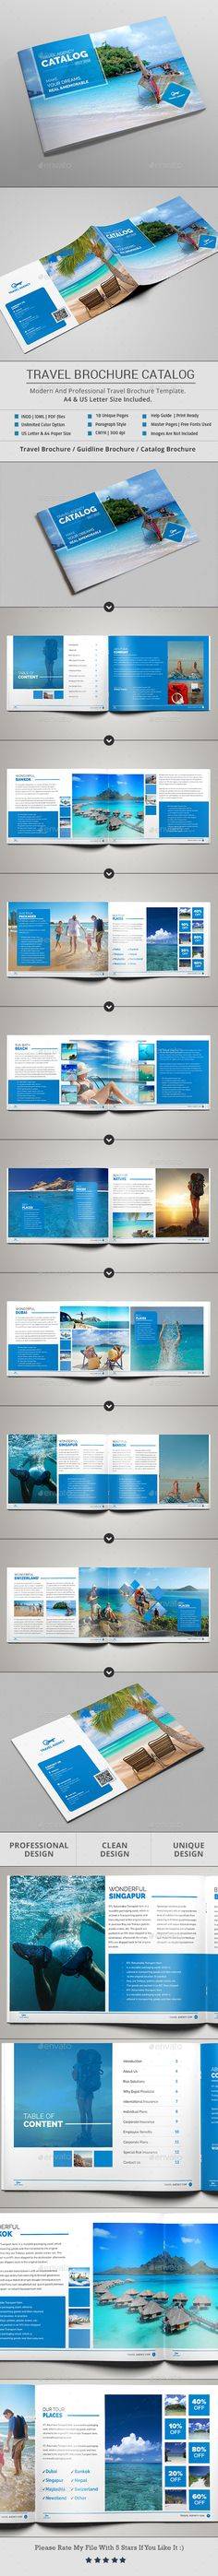 Travel Brochure & Catalog Template — InDesign INDD #11x8.5 #creative brochure • Download ➝ https://graphicriver.net/item/travel-brochure-catalog-template/18924677?ref=pxcr